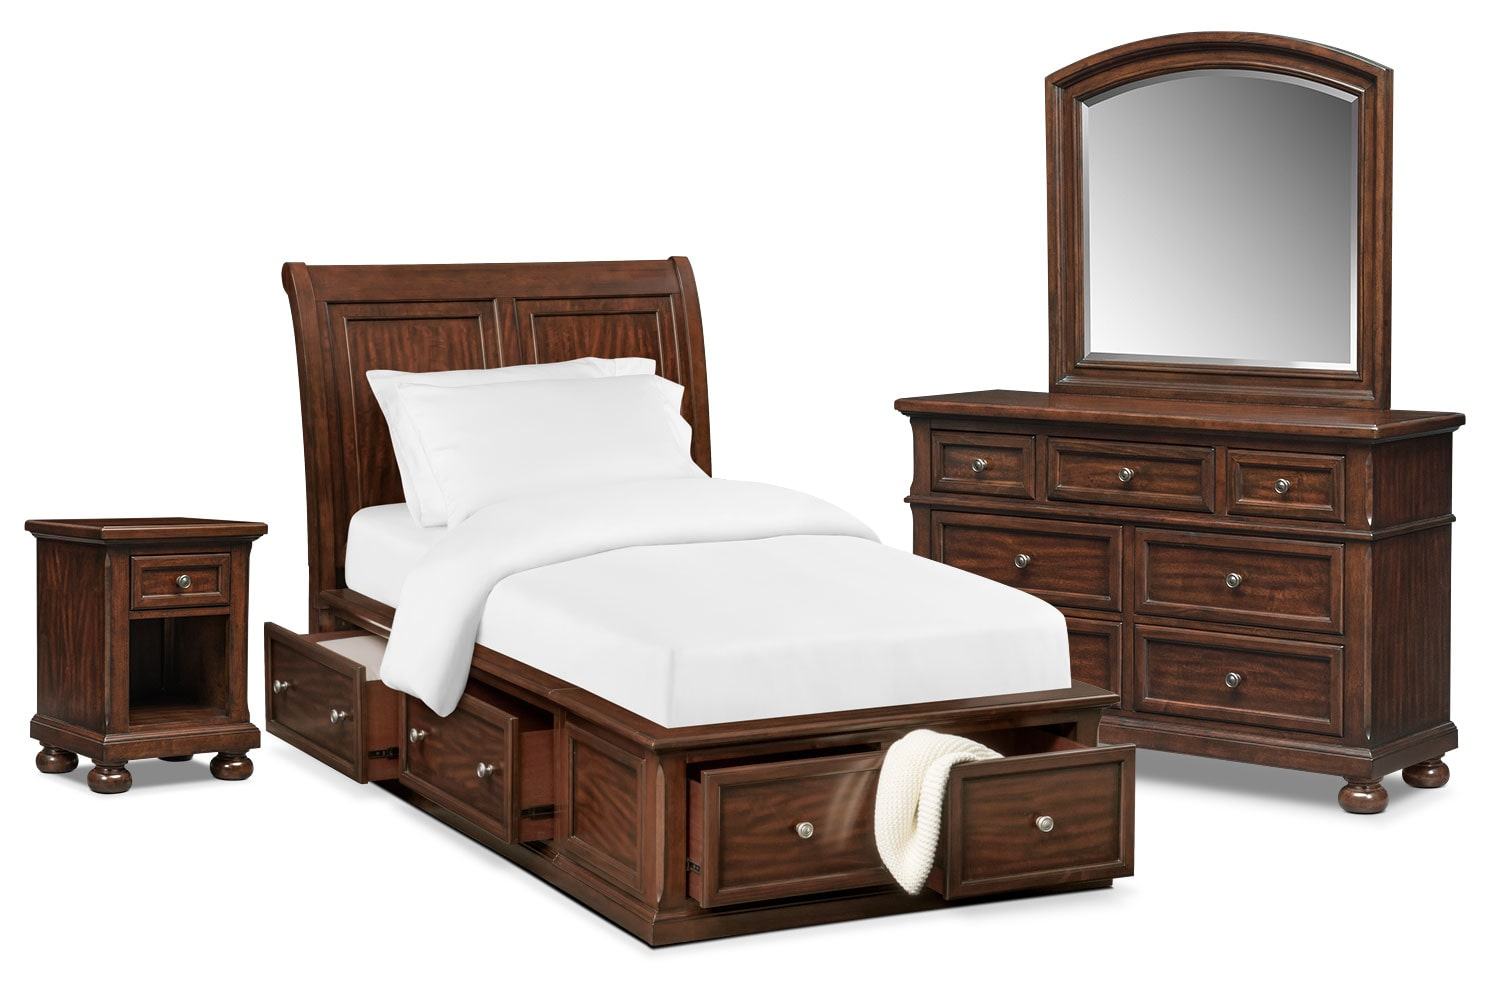 Hanover youth 6 piece twin sleigh bedroom set with storage for Cherry furniture